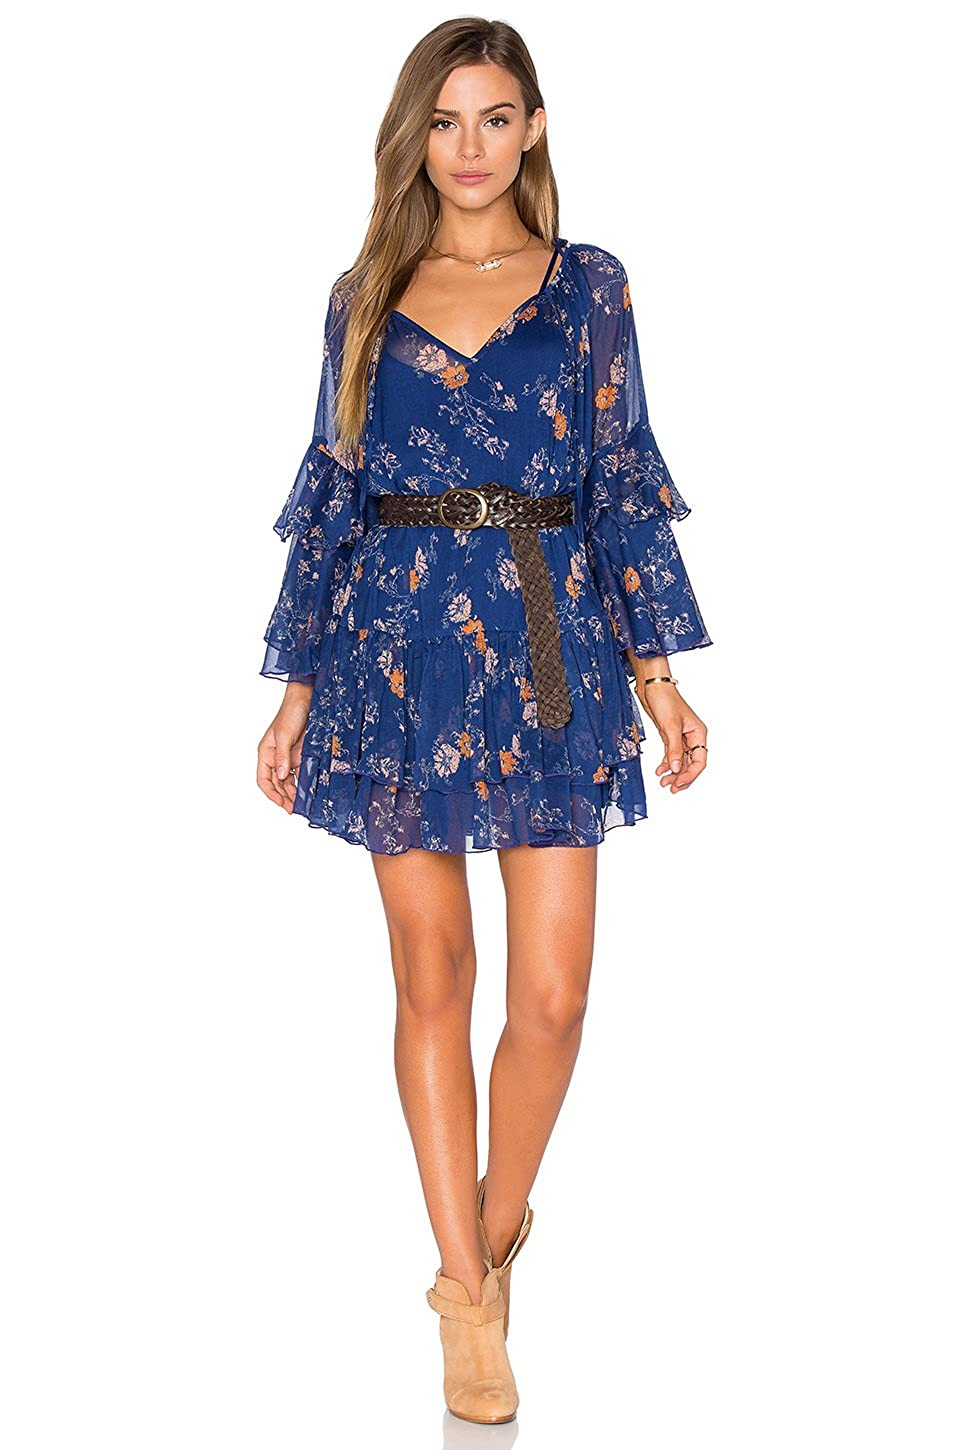 7e2f5bdccd55 Free People 'Sunsetter' Floral Print Minidress Blue Combo Small at Amazon  Women's Clothing store: